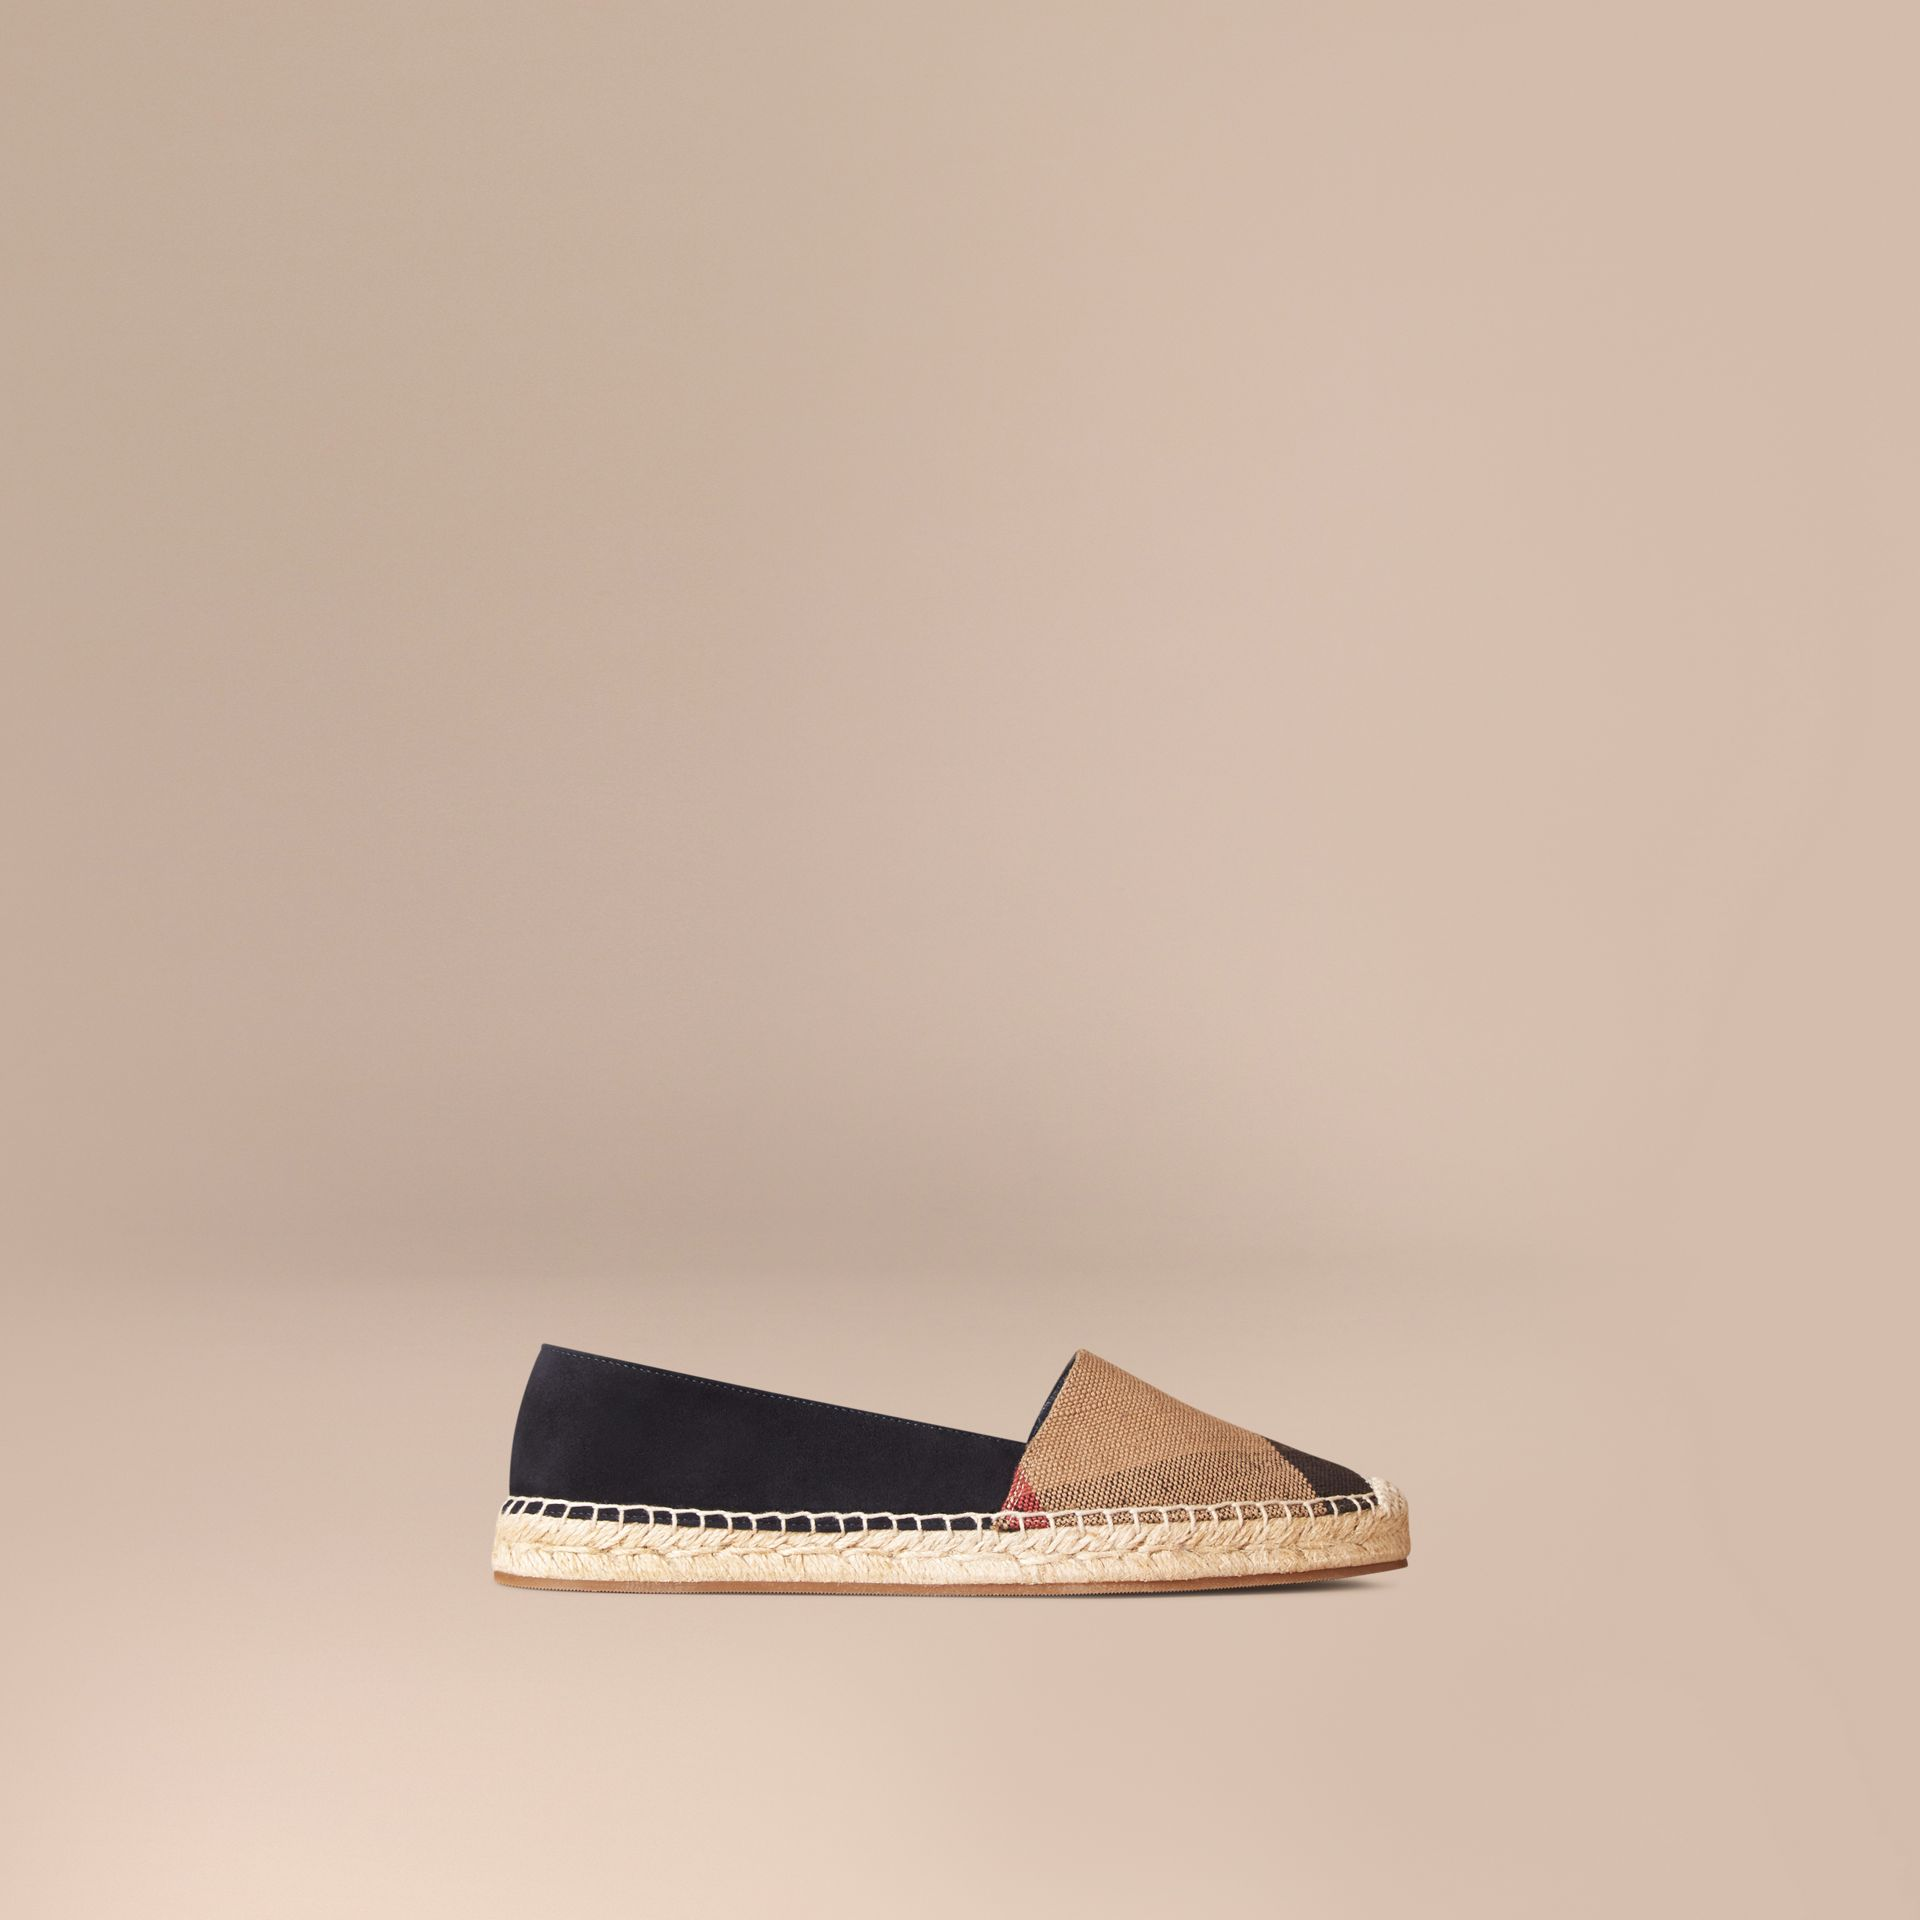 Navy Check Jute Cotton and Suede Espadrilles Navy - gallery image 1